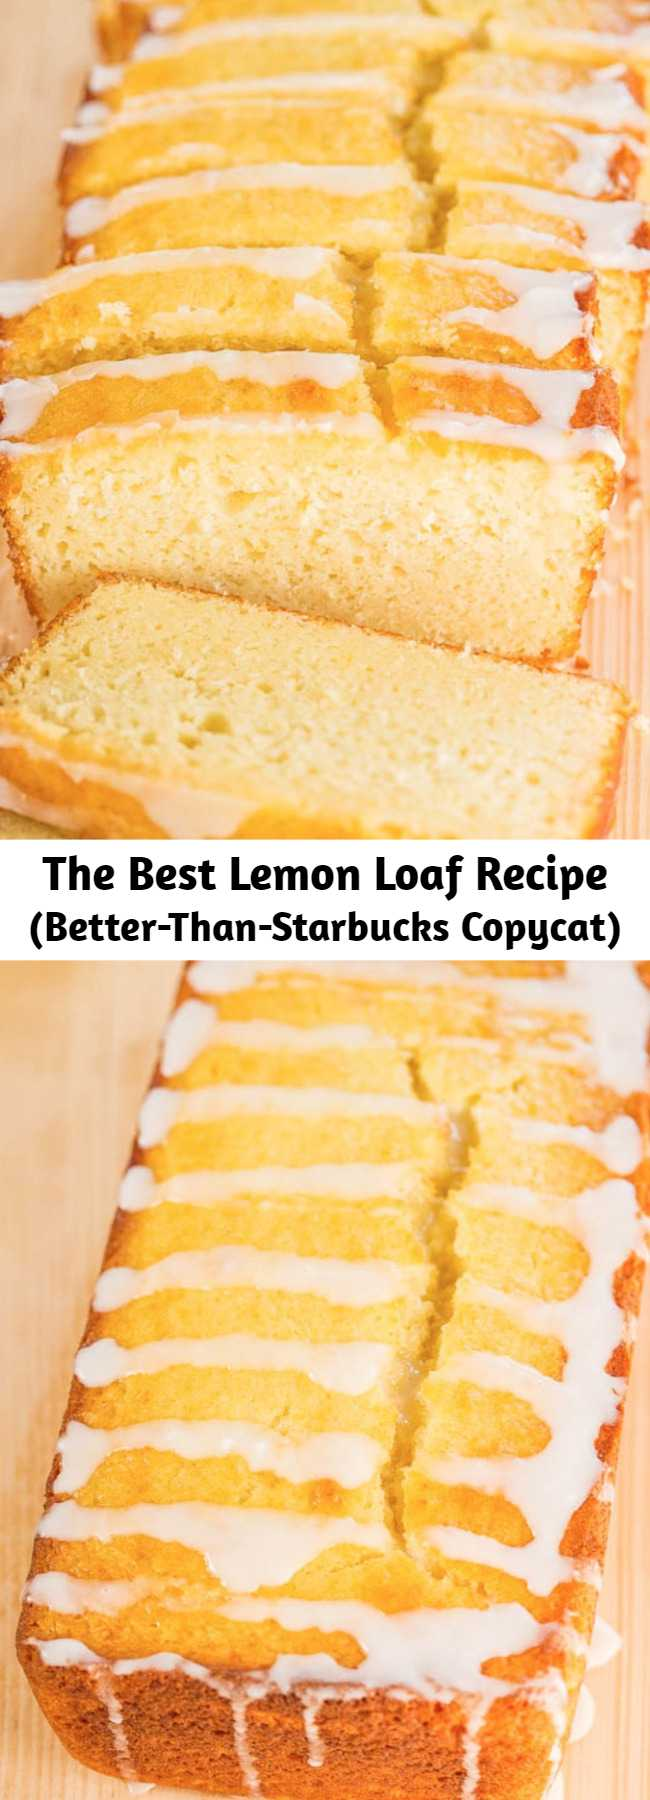 The Best Lemon Loaf Recipe (Better-Than-Starbucks Copycat) - It took years, but I finally recreated it!! Easy, no mixer, no cake mix, dangerously good, and SPOT ON!! You're going to love this lemon pound cake recipe!